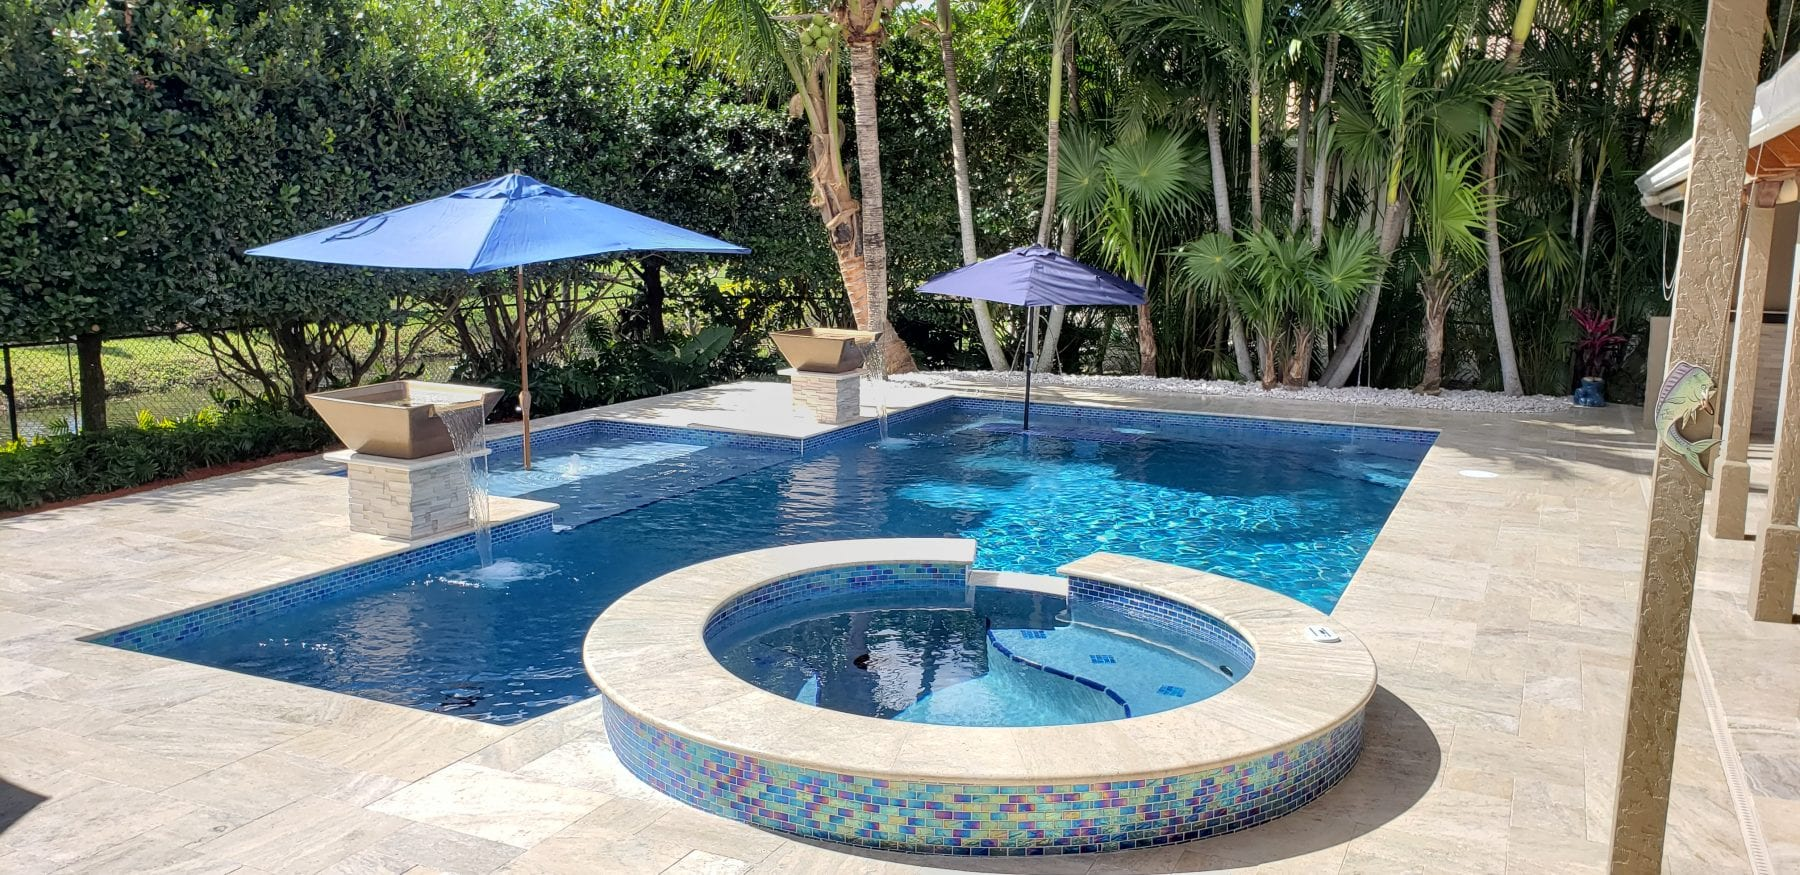 Cliff S Pools Amp Patios Pool Remodeling Patio Amp Driveway